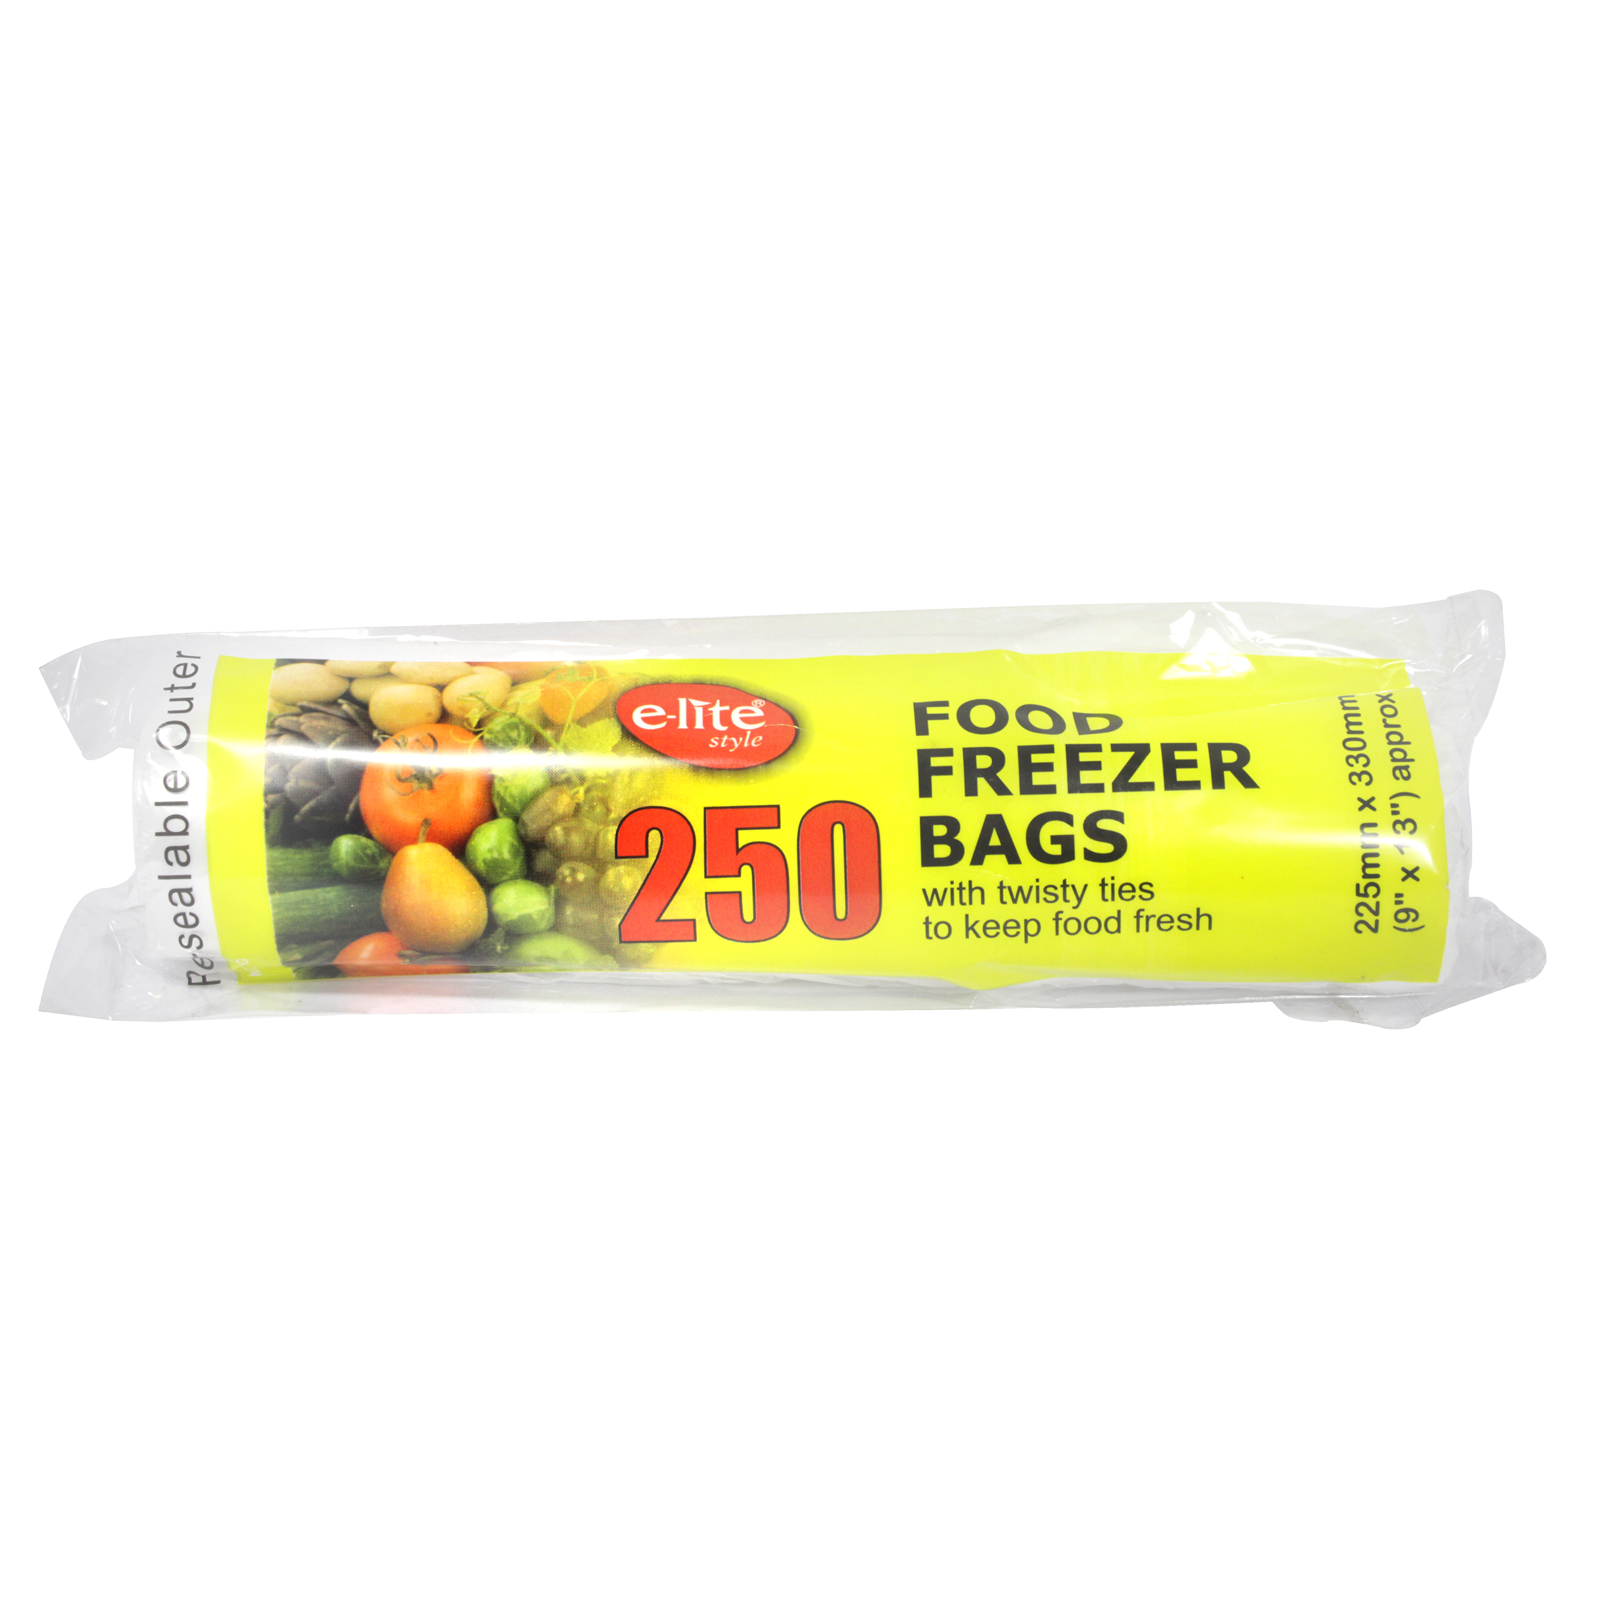 NICE+CLN 250 FOOD FREEZER BAG 9